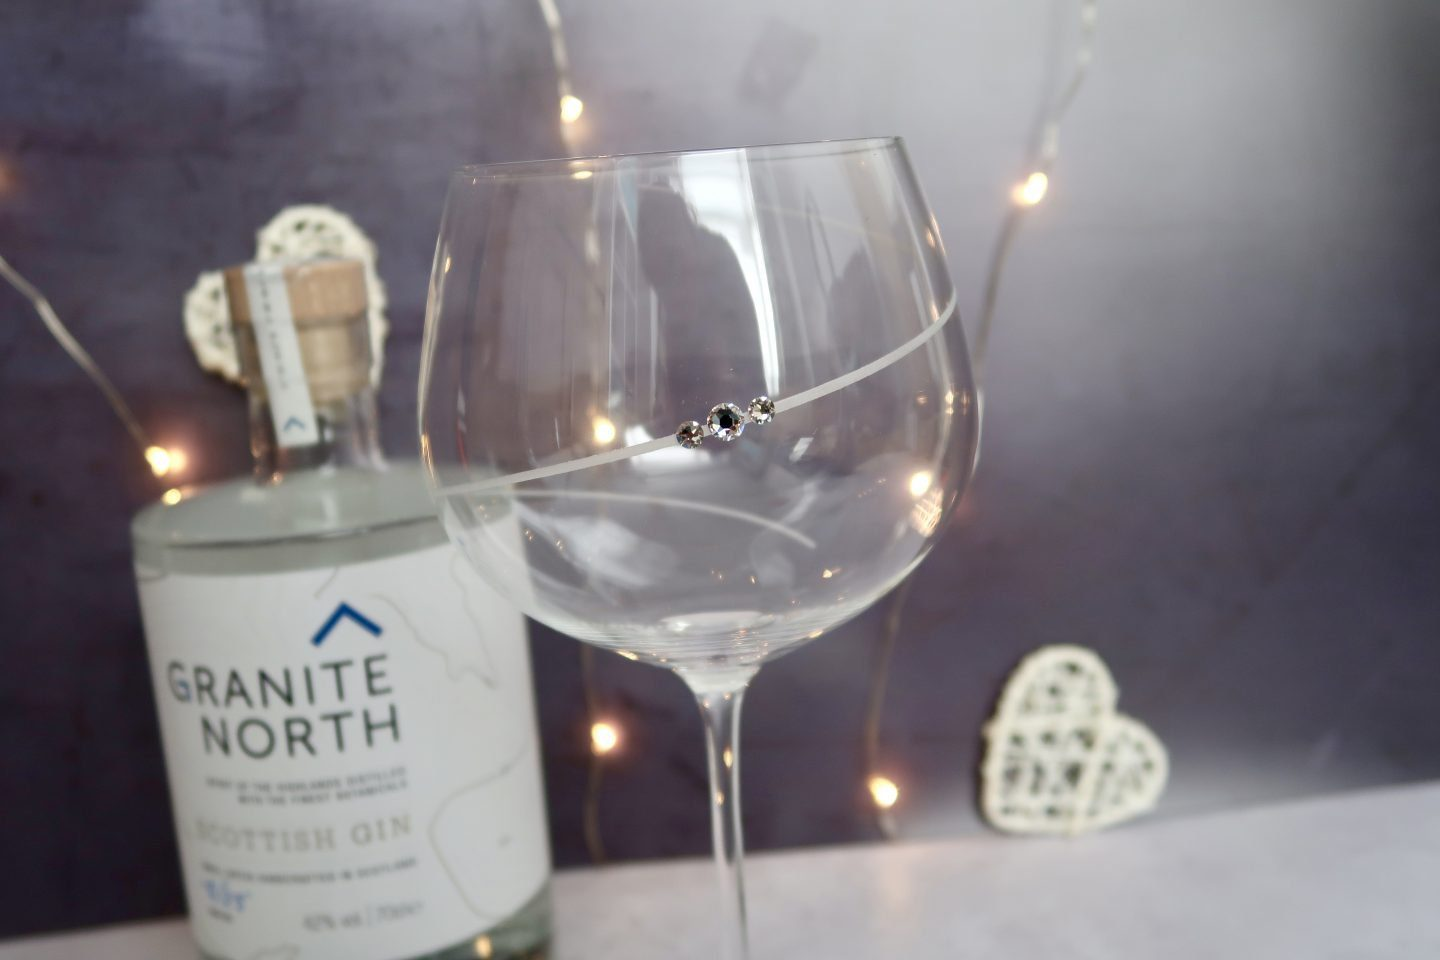 A gin glass with a crystal on it, in front of a bottle of gin and some fairy lights